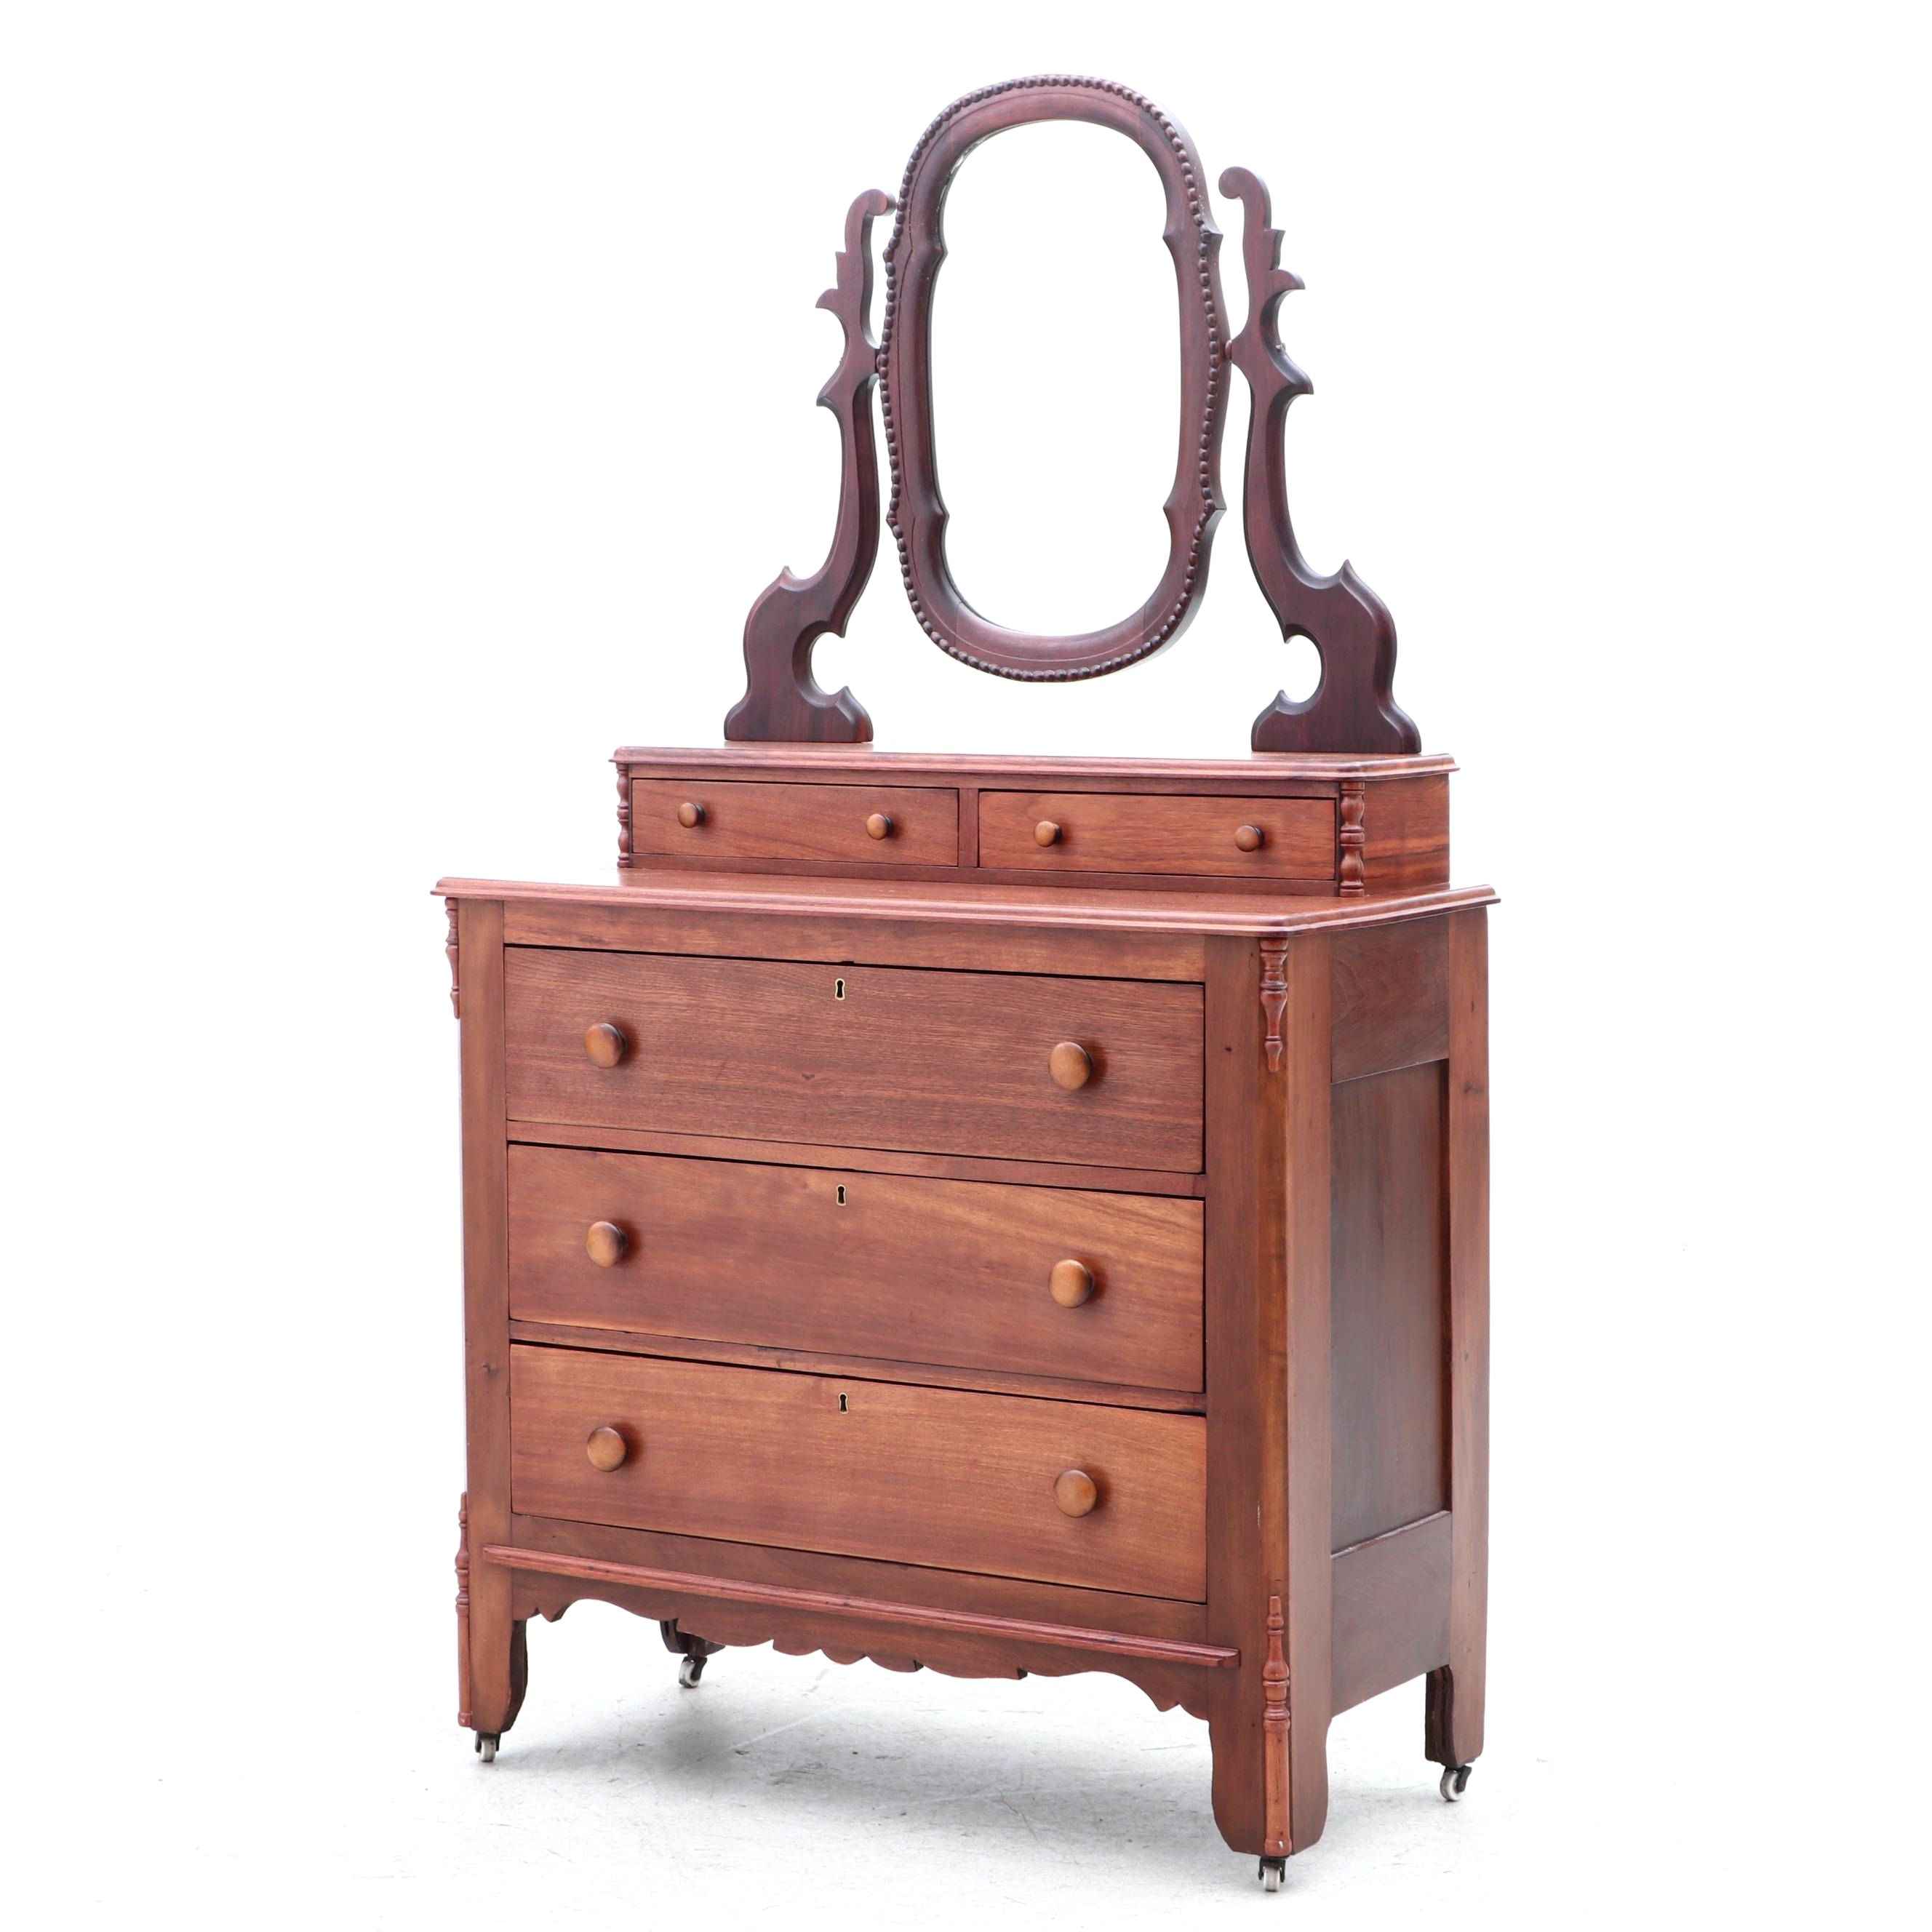 Early Victorian Walnut Dresser with Mirror, Circa 1860s